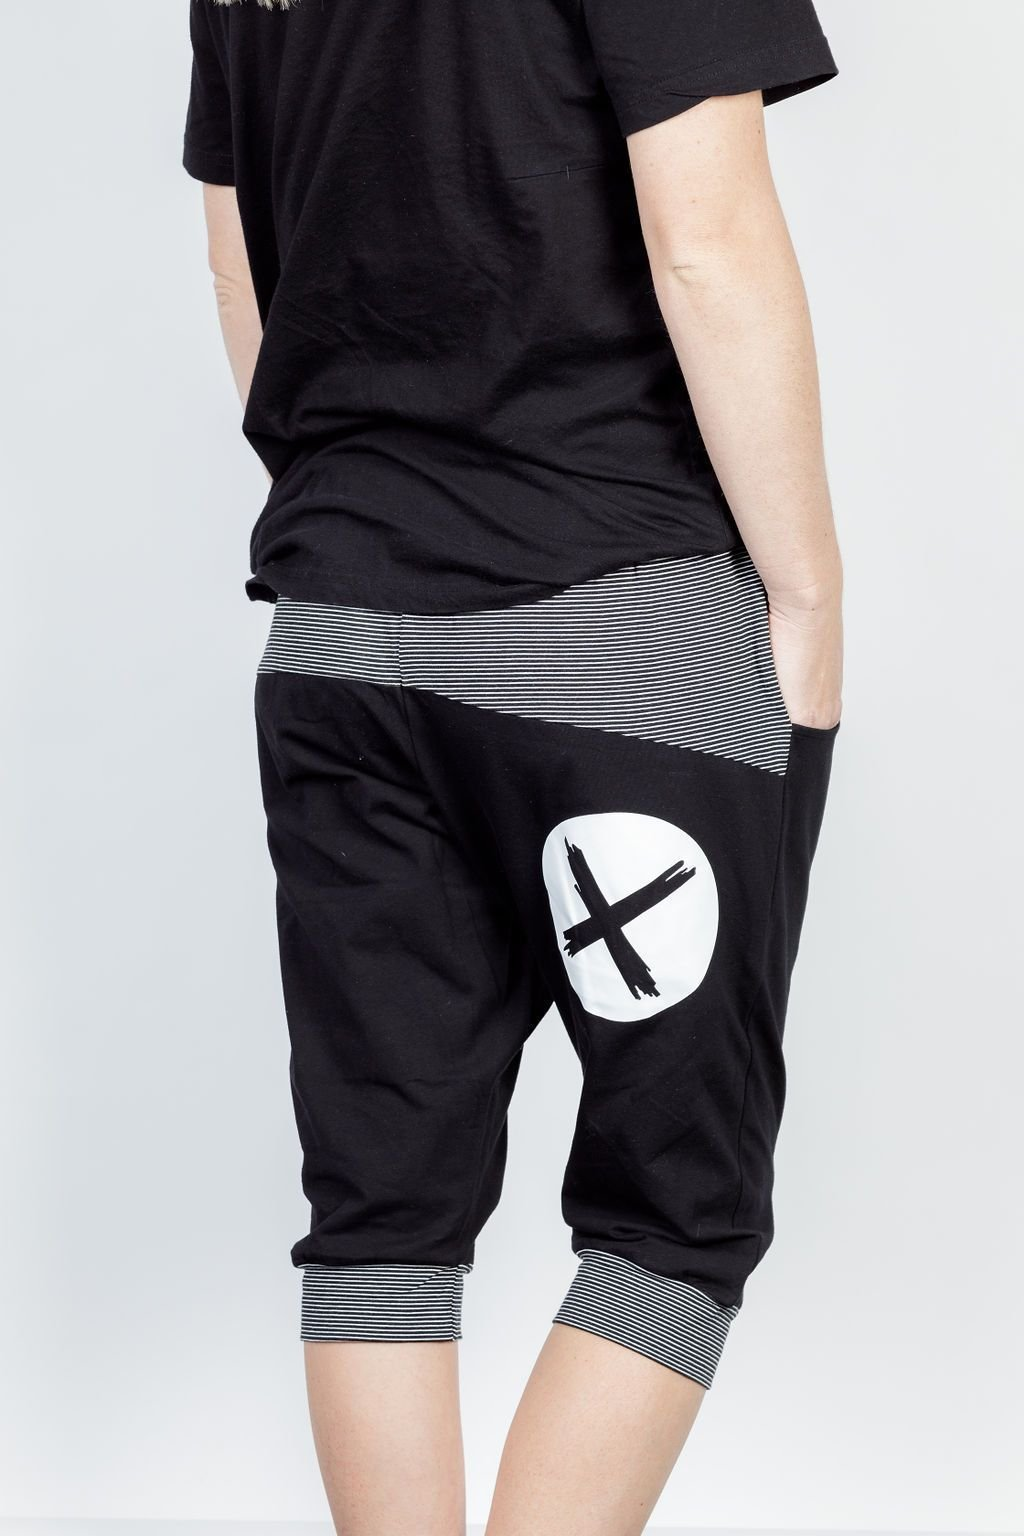 3/4 APARTMENT PANT BLACK WITH WHITE PRINT & STRIPE YOKE - No image set - Ebony Boutique NZ